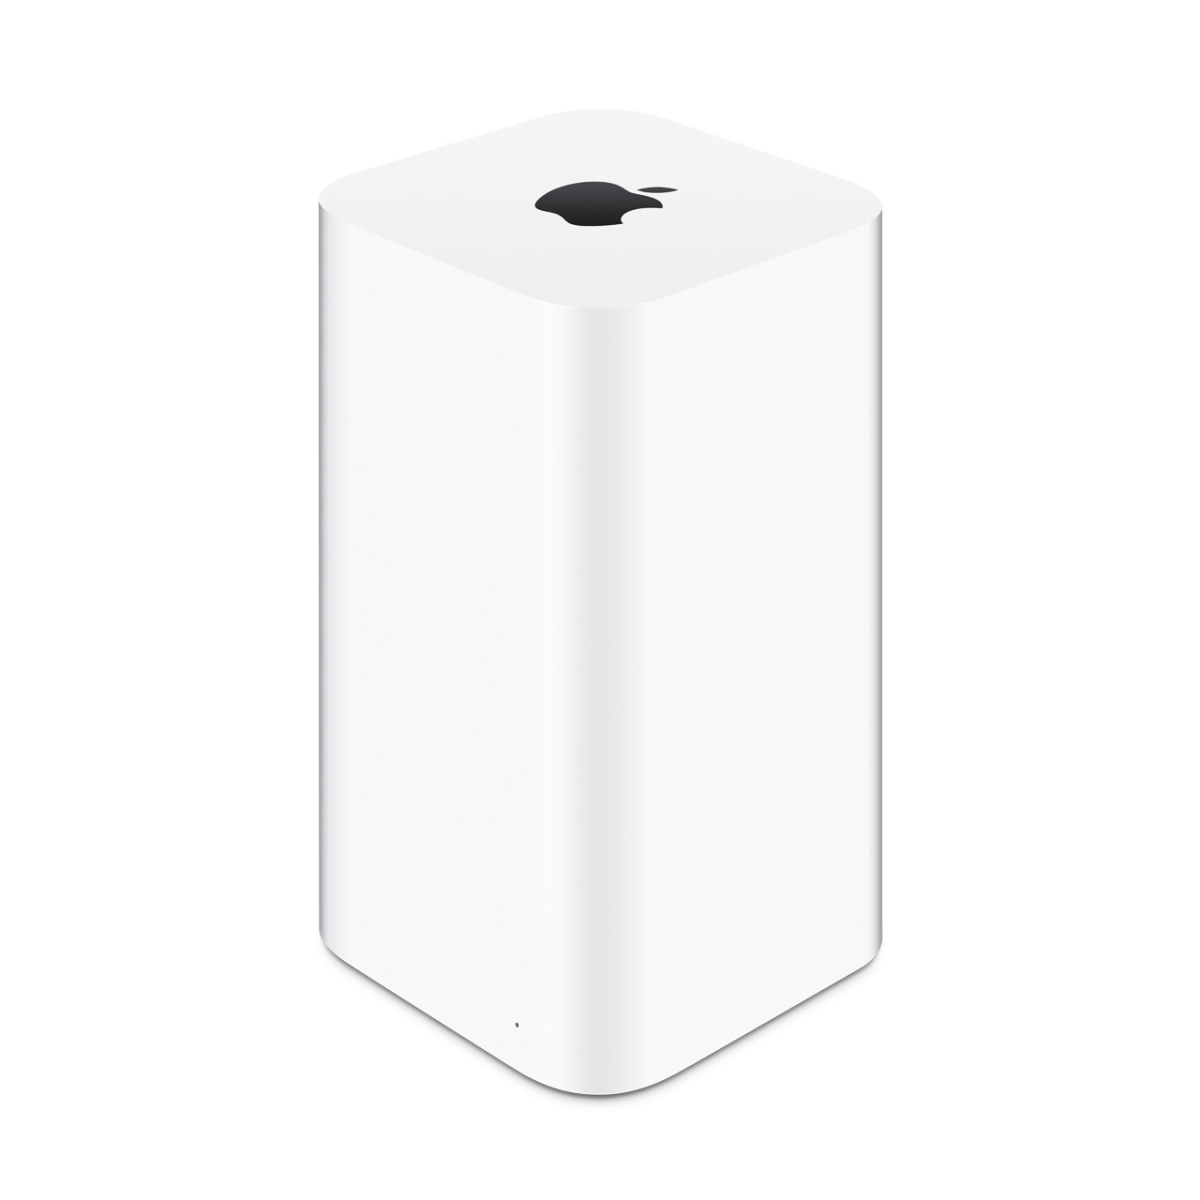 Apple's New AirPort Extreme and Time Capsule Base Stations (802.11ac)